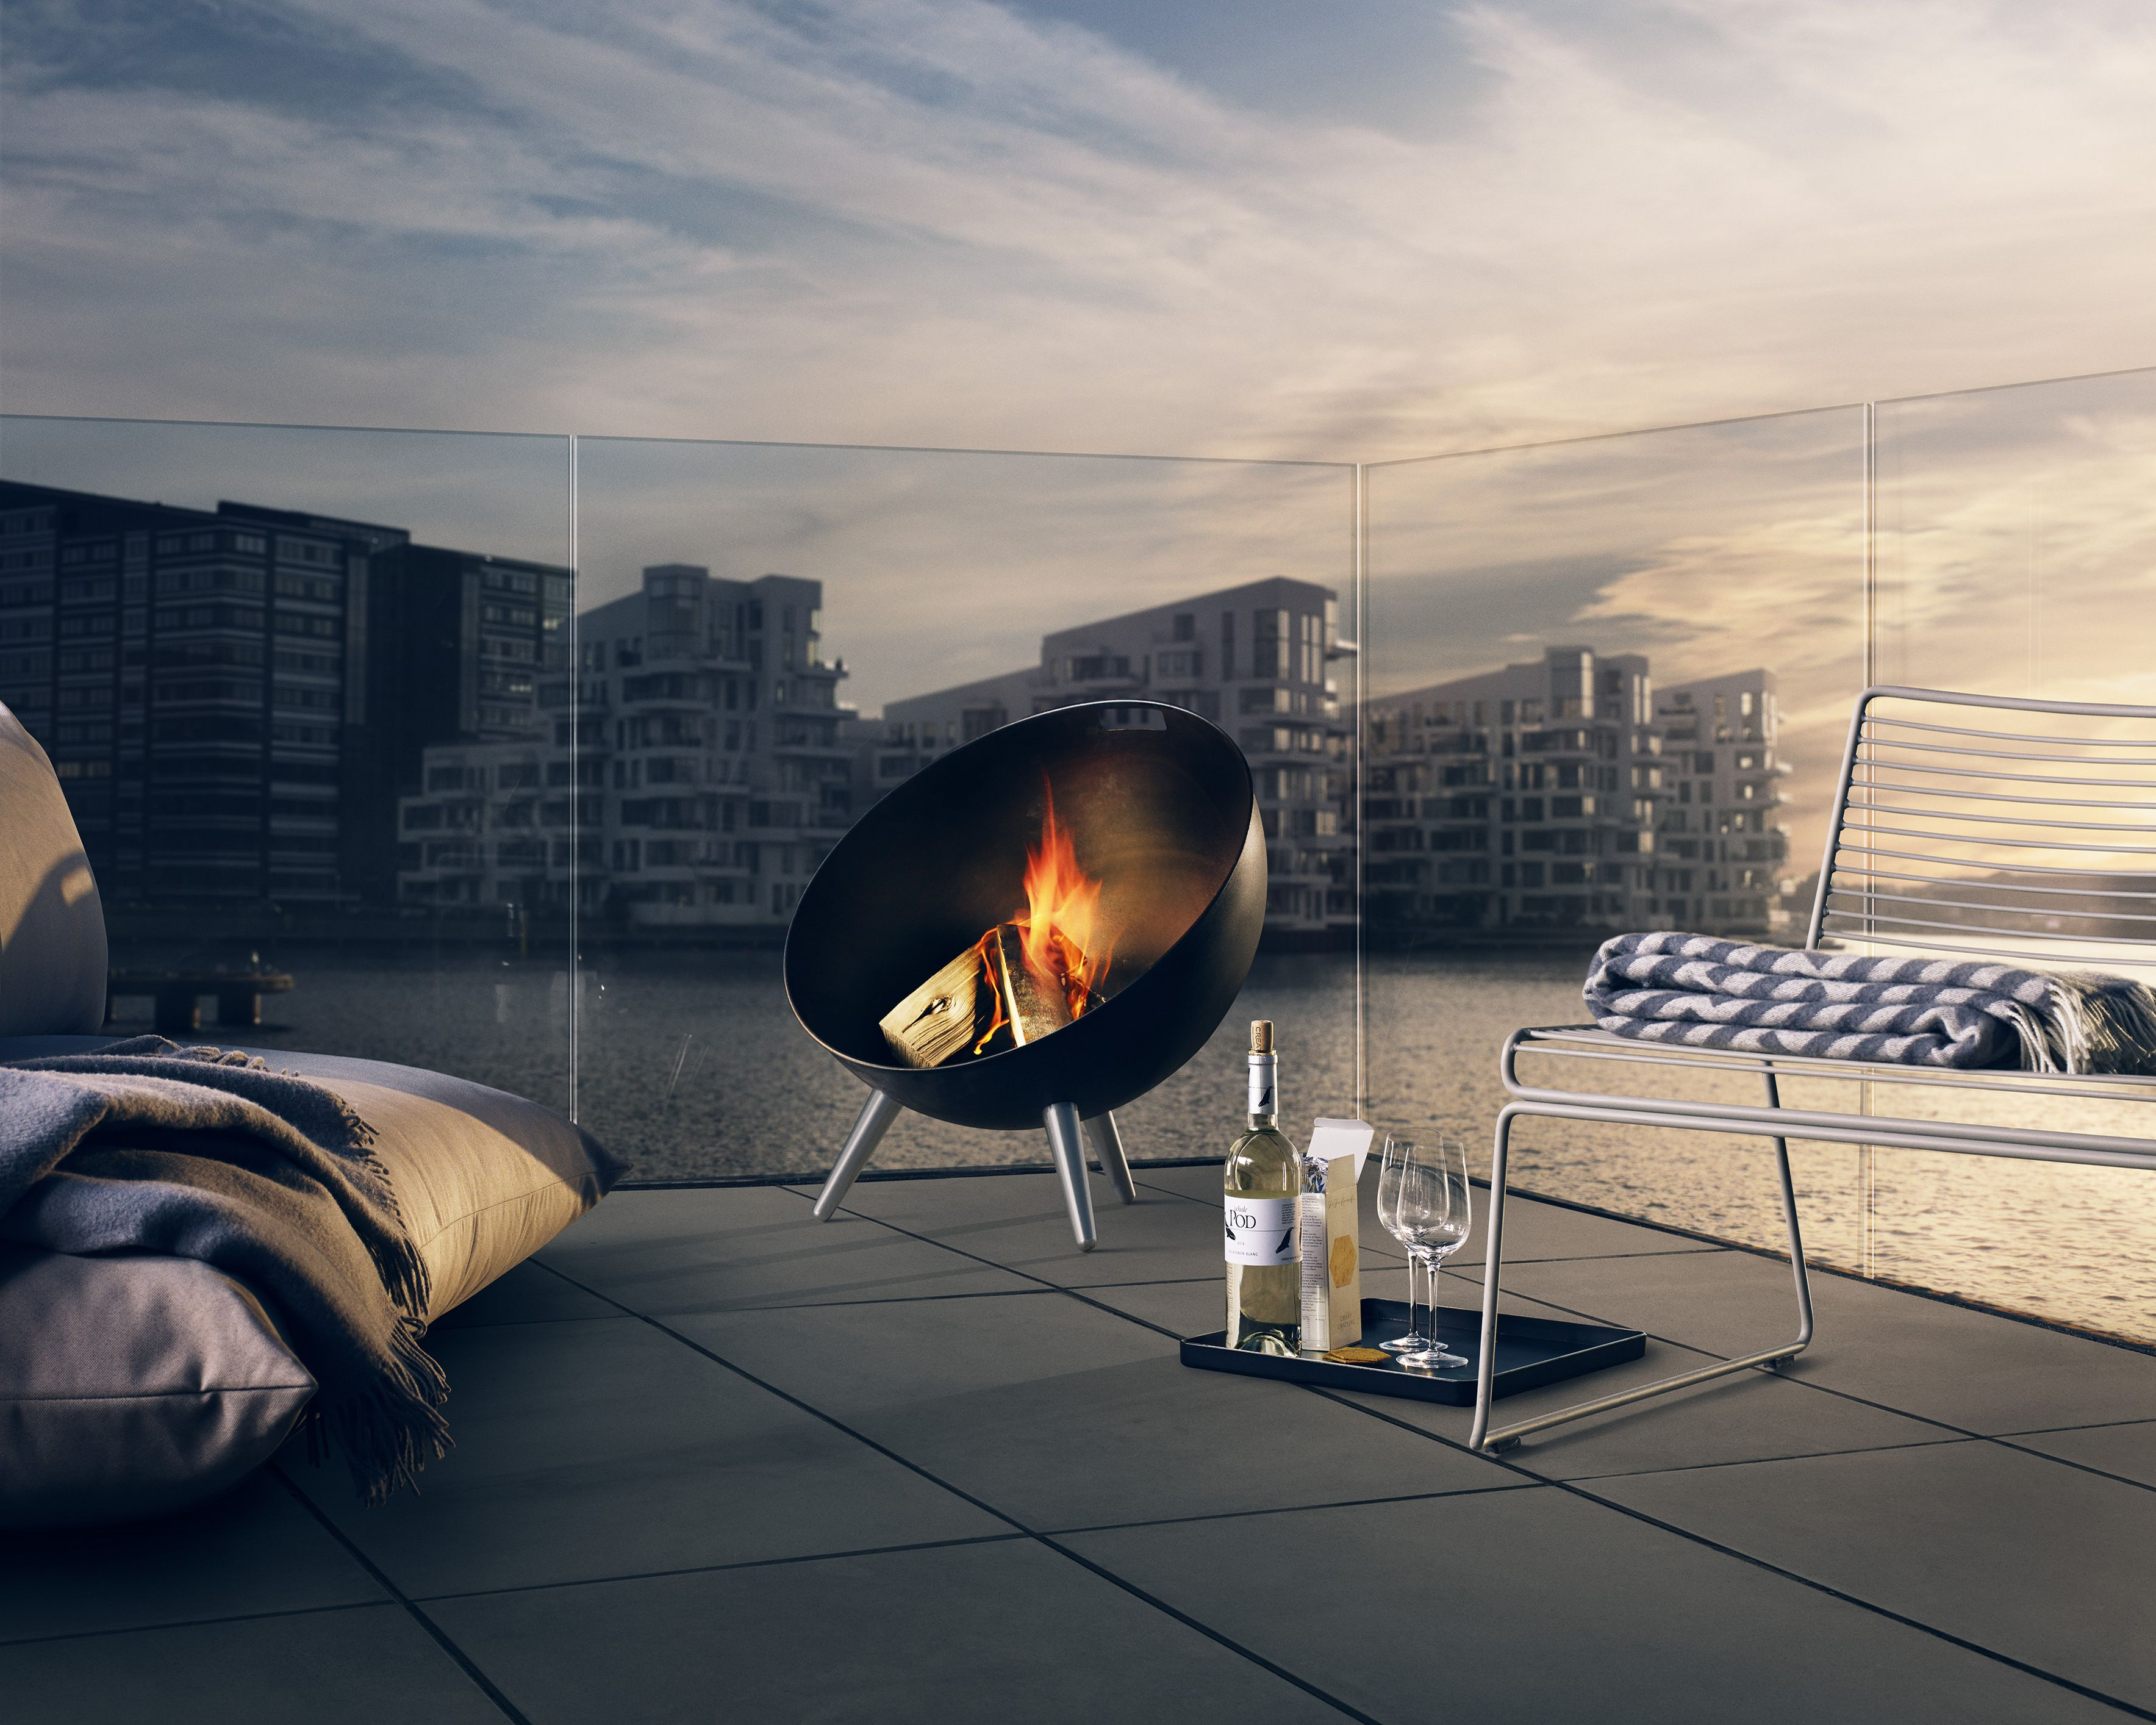 The sun is edging it's way out and in the Panik offices, we are day dreaming of (hopefully) soon to come balmy summer's evenings. The beautiful Fireglobe Fireplace by @evasolopins will create a great atmosphere in the garden and provide warmth, allowing you to stay outdoors longer and later. Due to arrive into stock soon but can be pre ordered now.